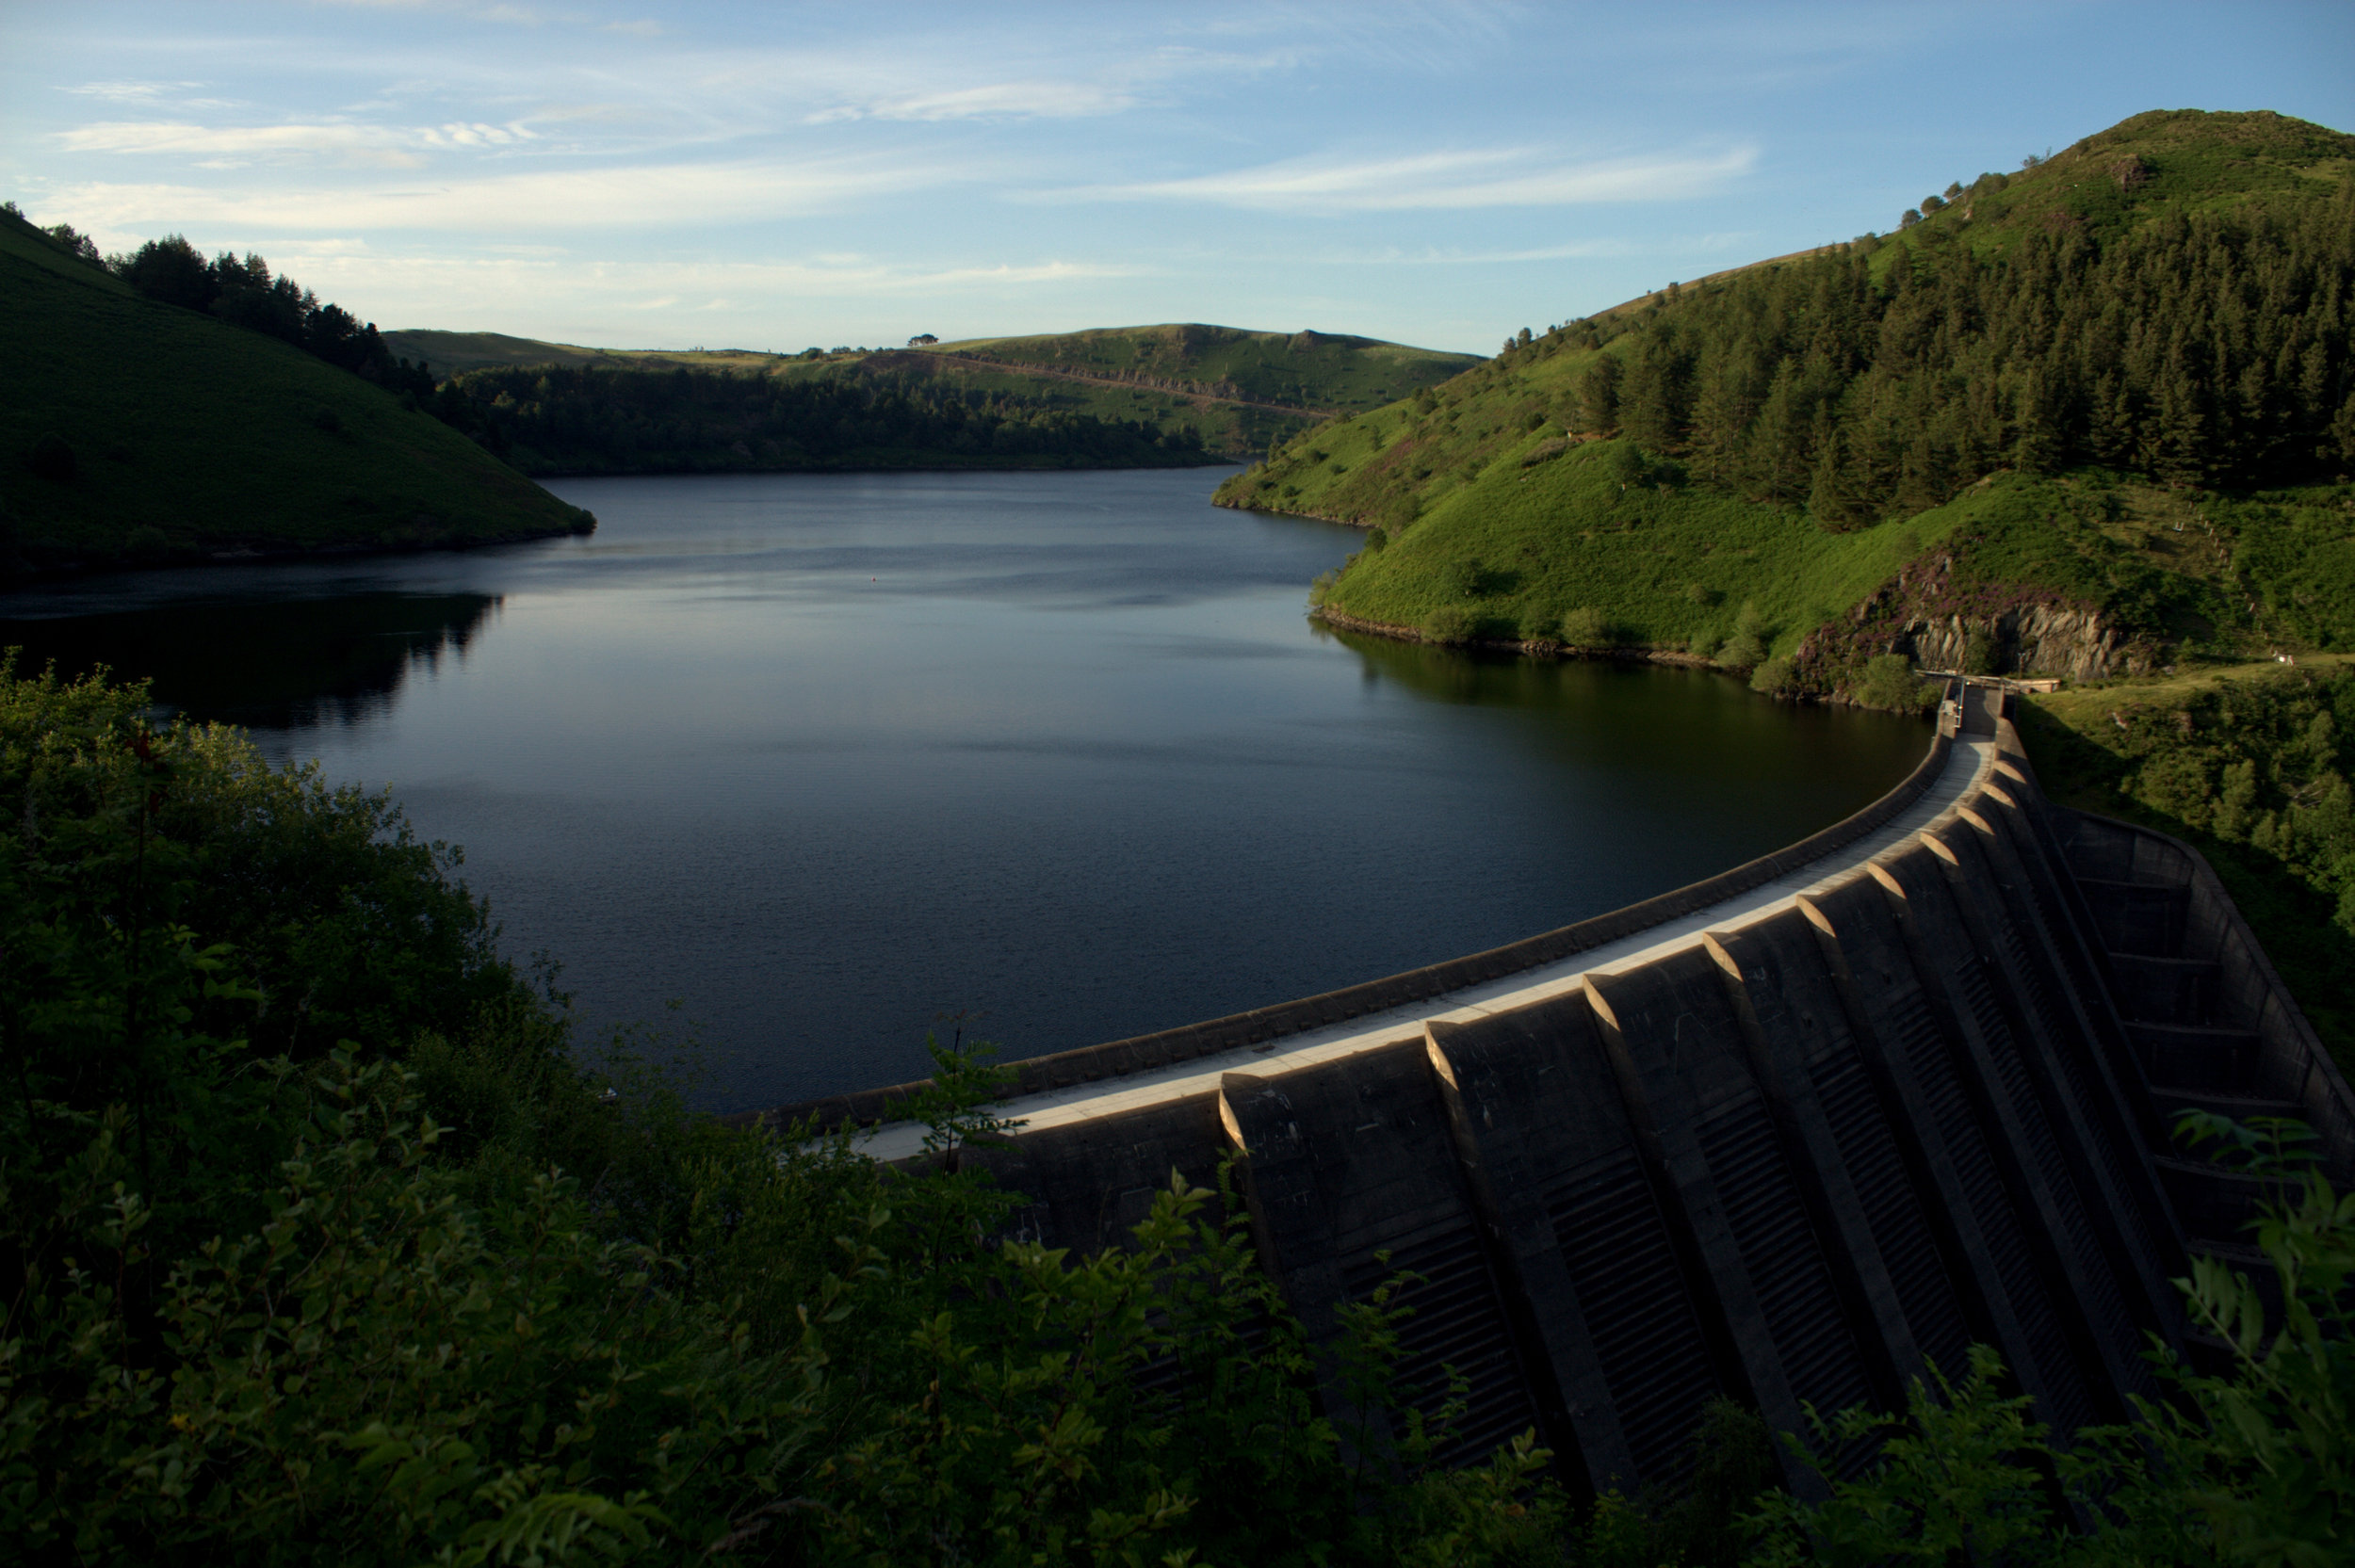 Clwedog Reservoir (about 4 miles)